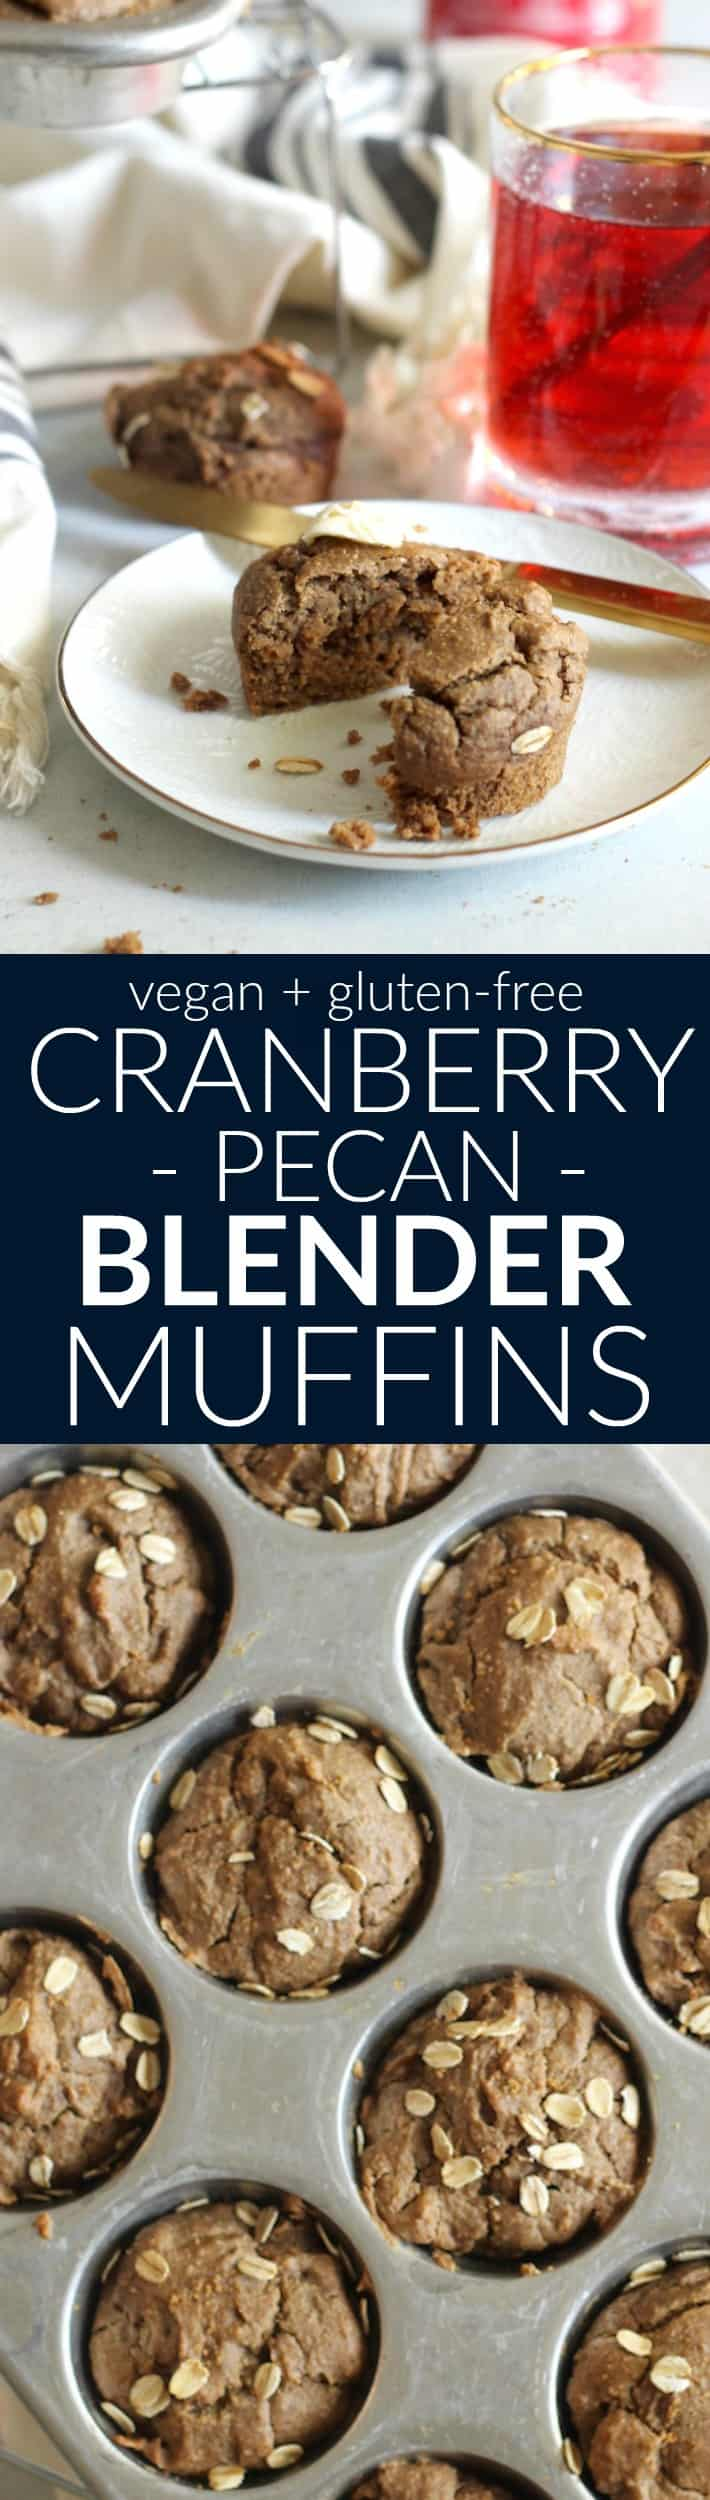 These easy and tasty 100% whole grain Cranberry Pecan Blender Muffins are made in the blender for easy cleanup! Vegan and gluten-free.